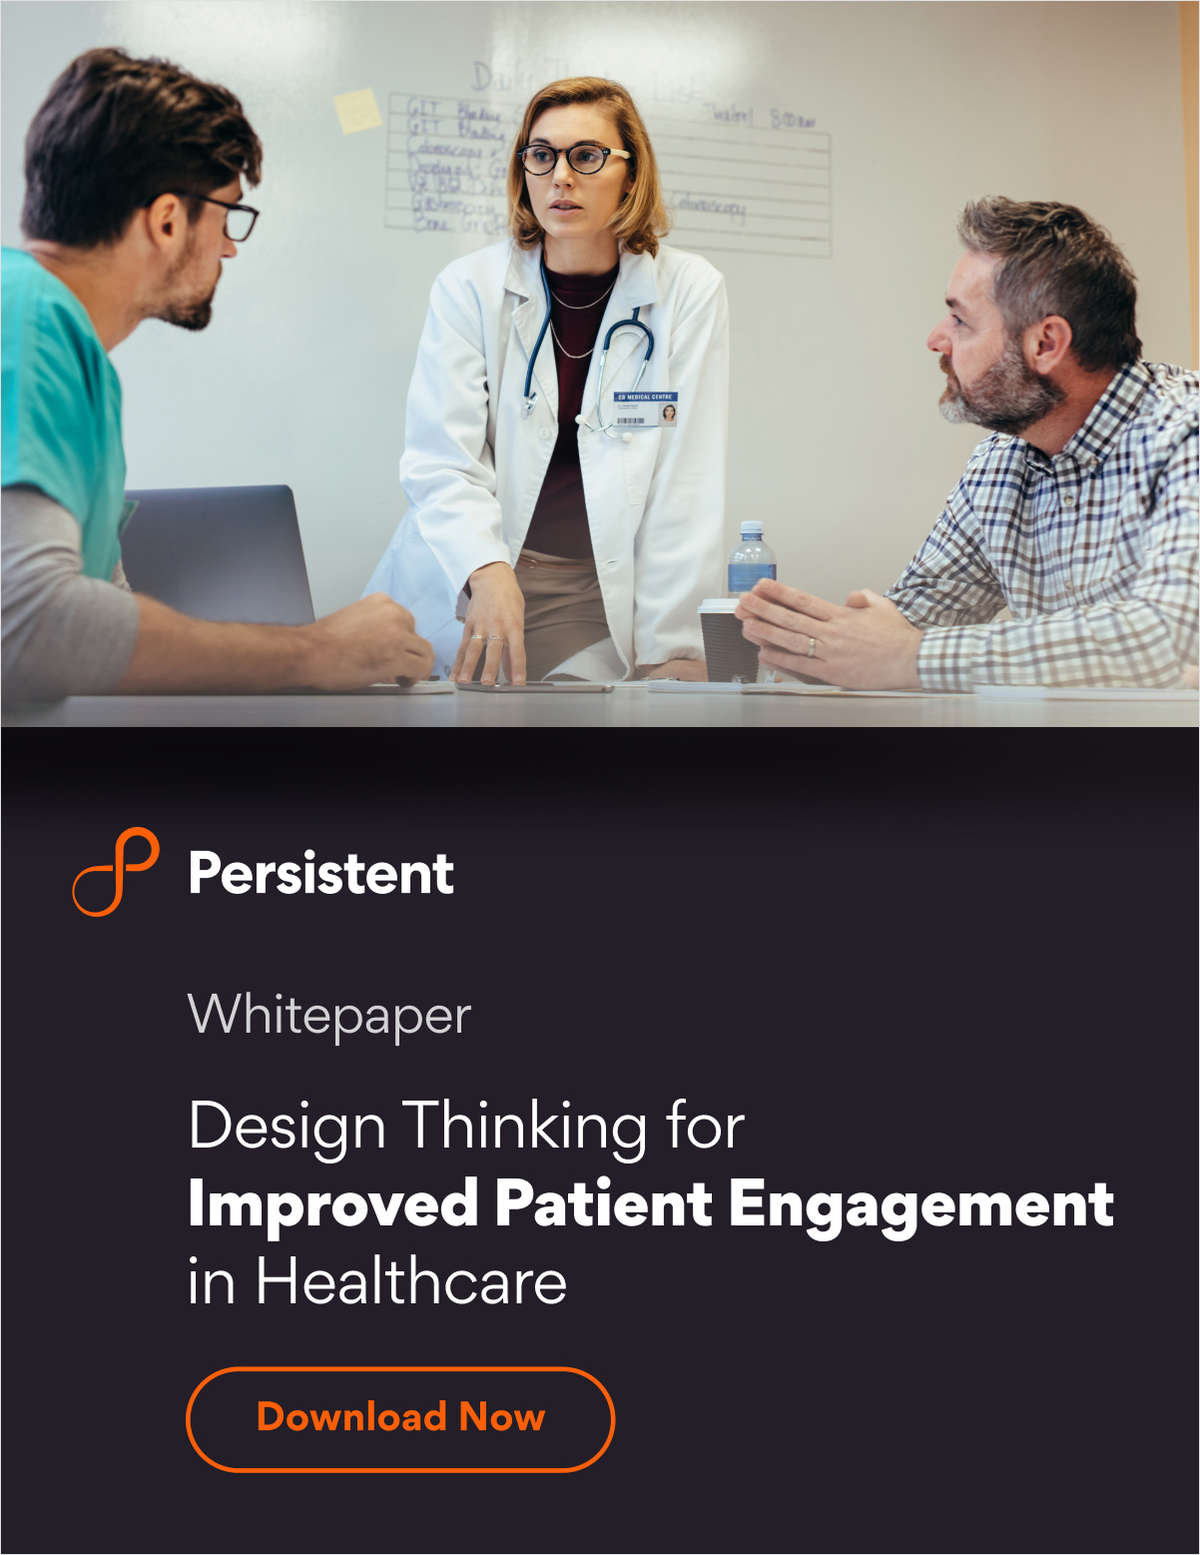 Design Thinking for Improved Patient Engagement in Healthcare